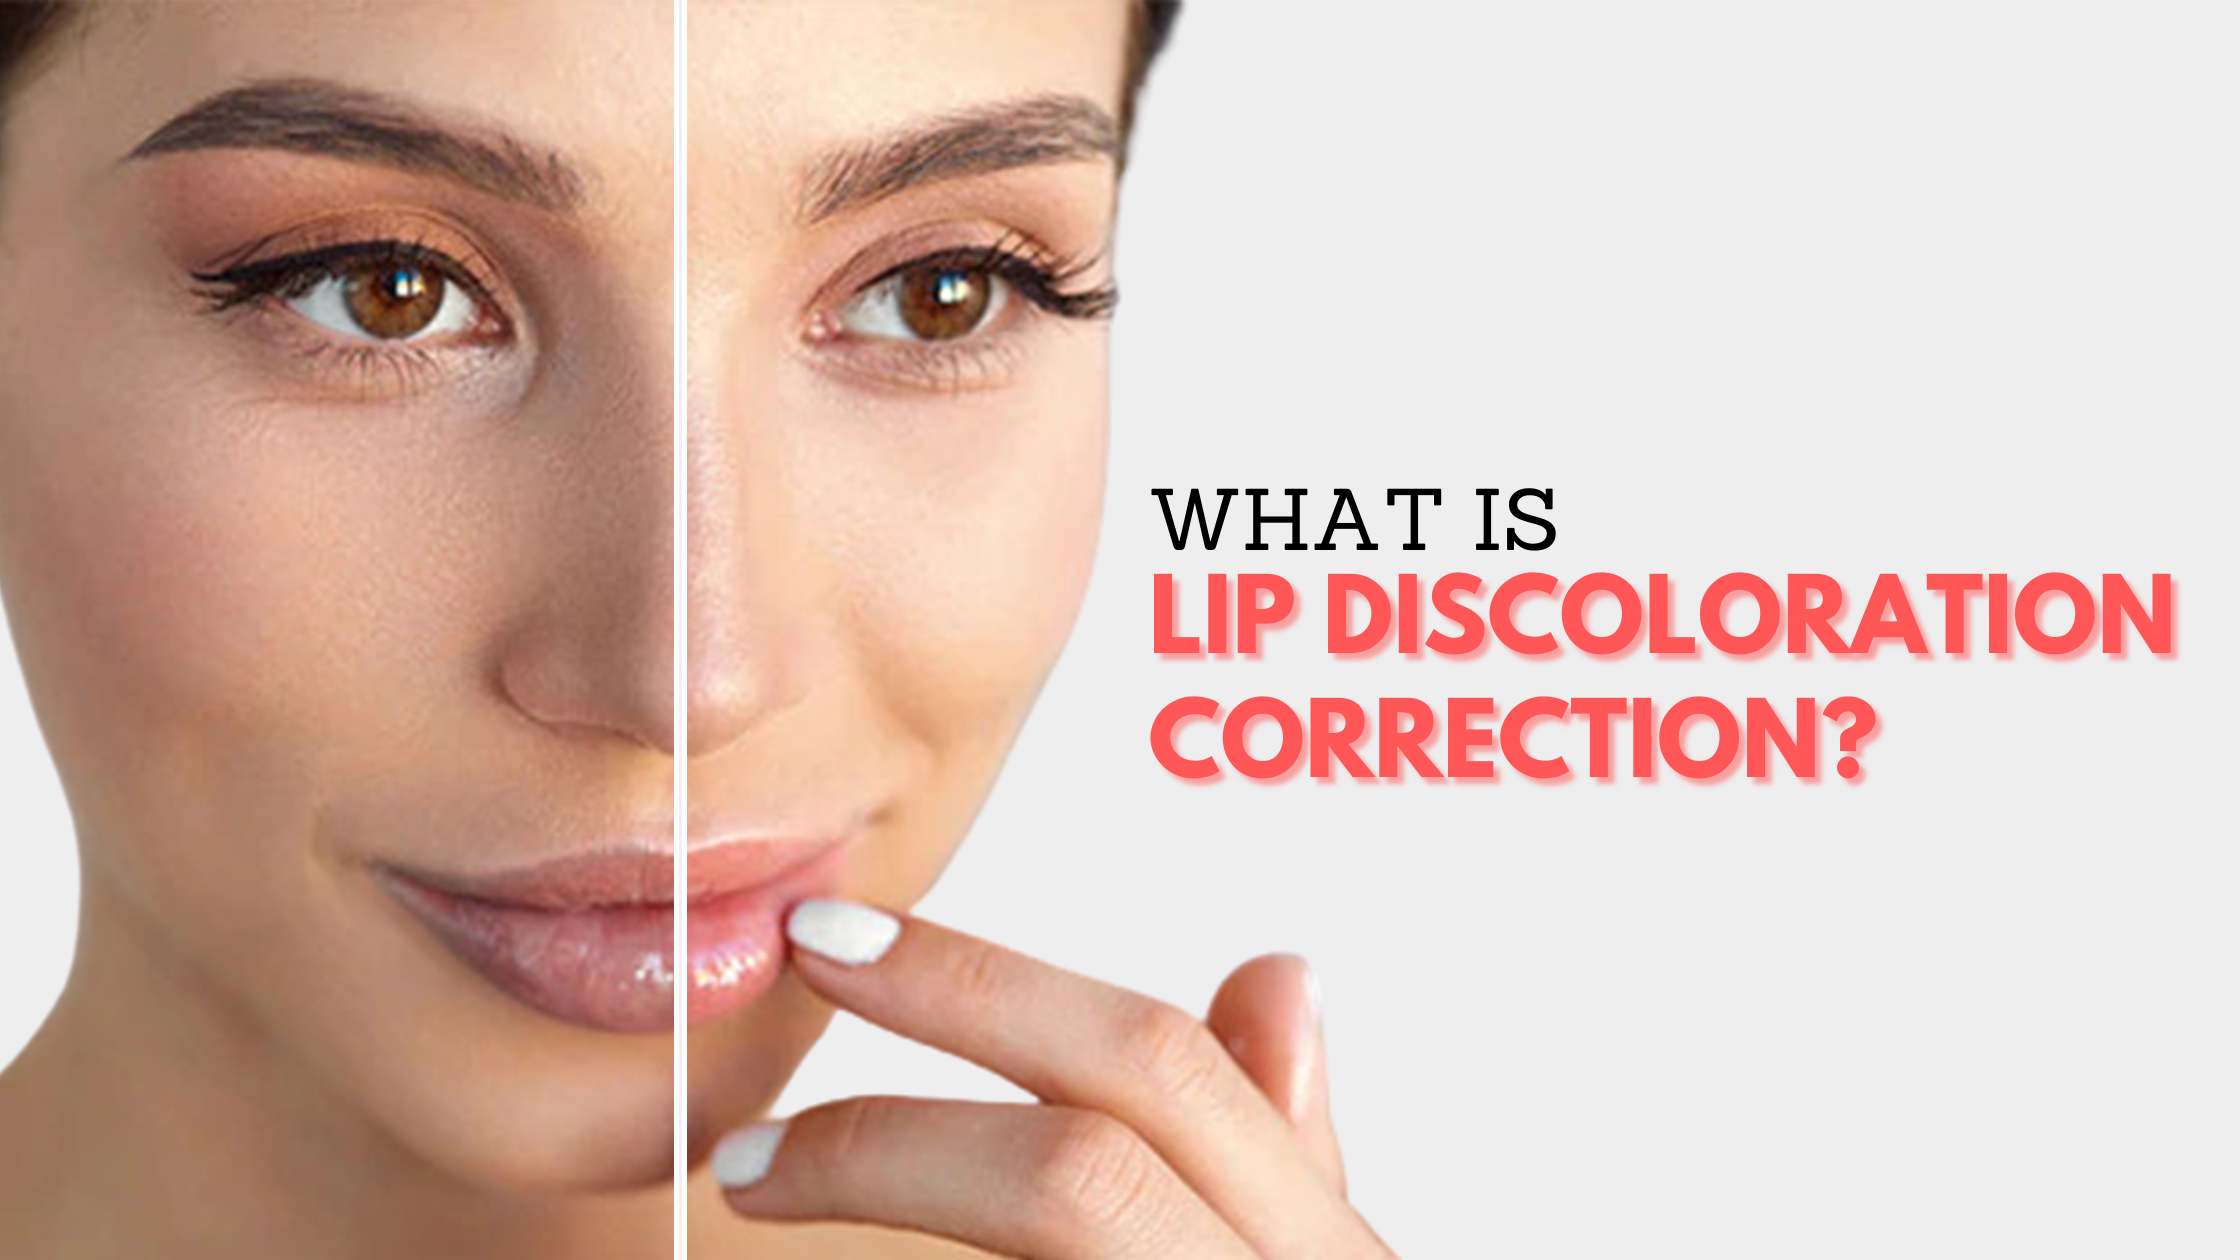 What is Lip Discoloration Correction?